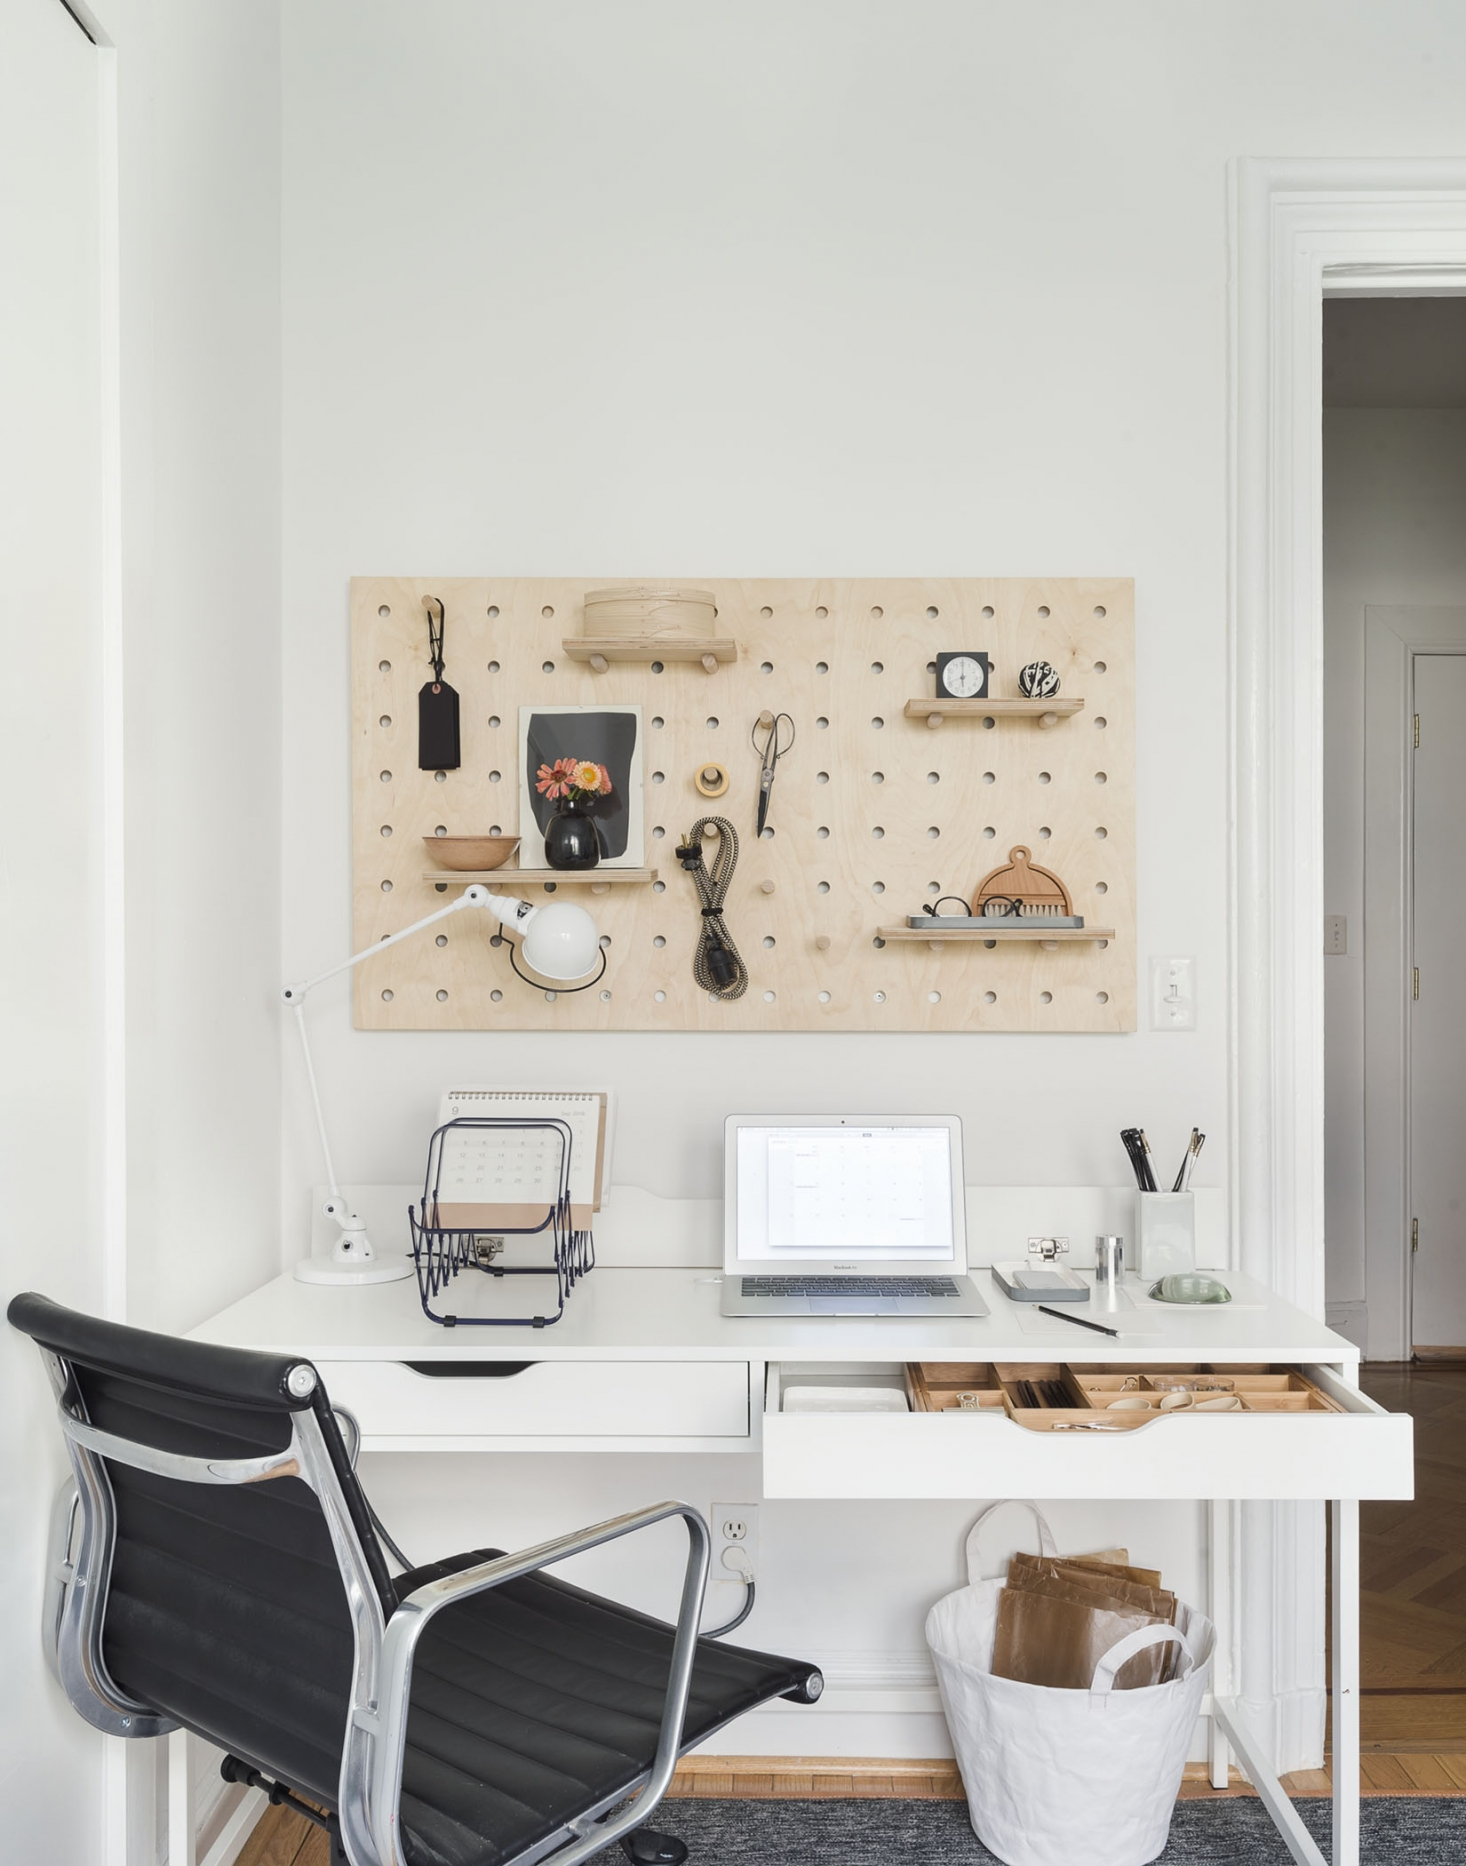 Photograph by  Matthew Williams  for   Remodelista: The Organized Home   .